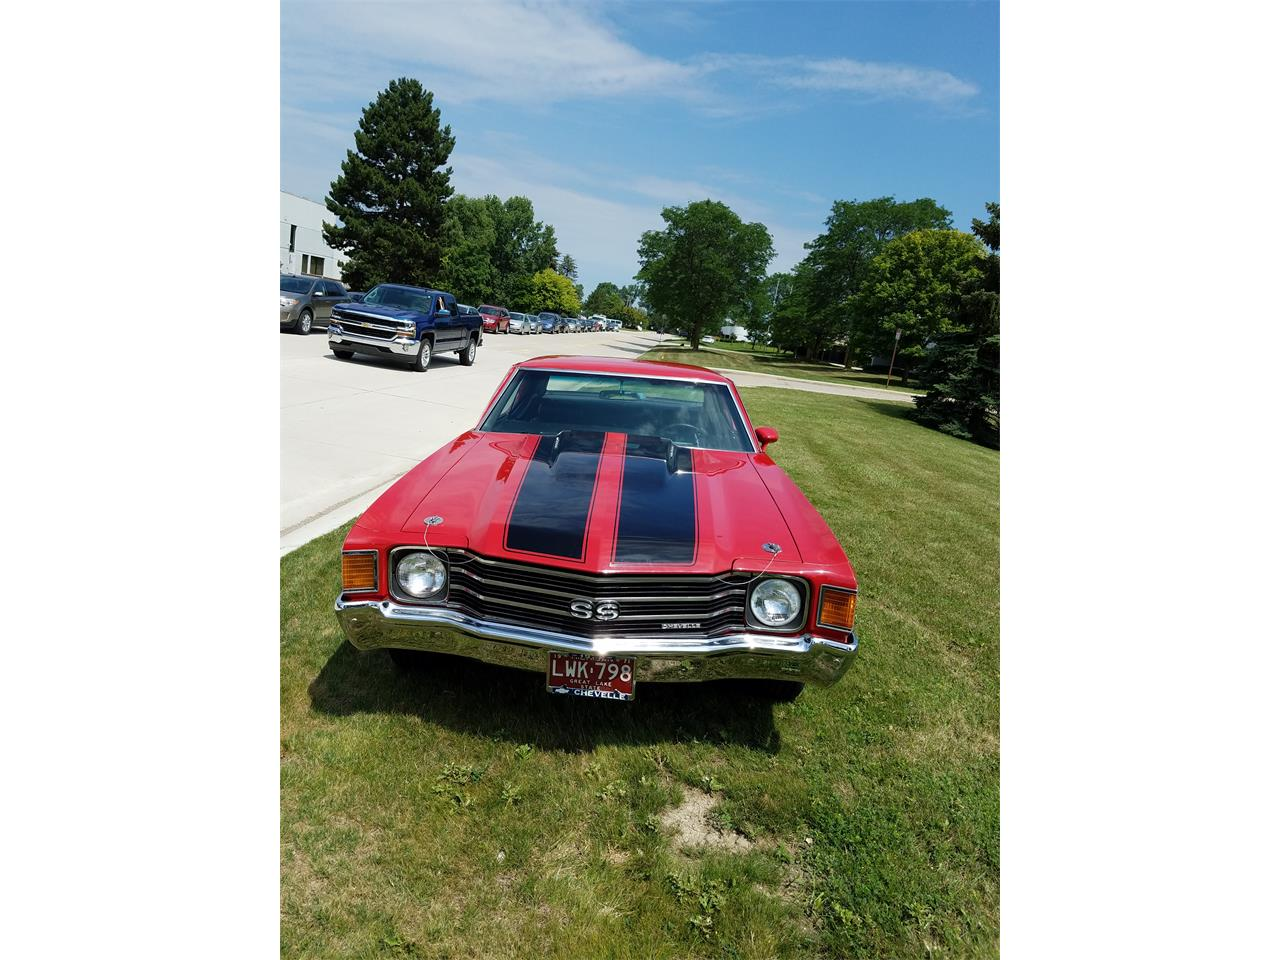 Large Picture of '72 Chevrolet Chevelle SS located in Rochester Hills Michigan Offered by a Private Seller - MH4Z